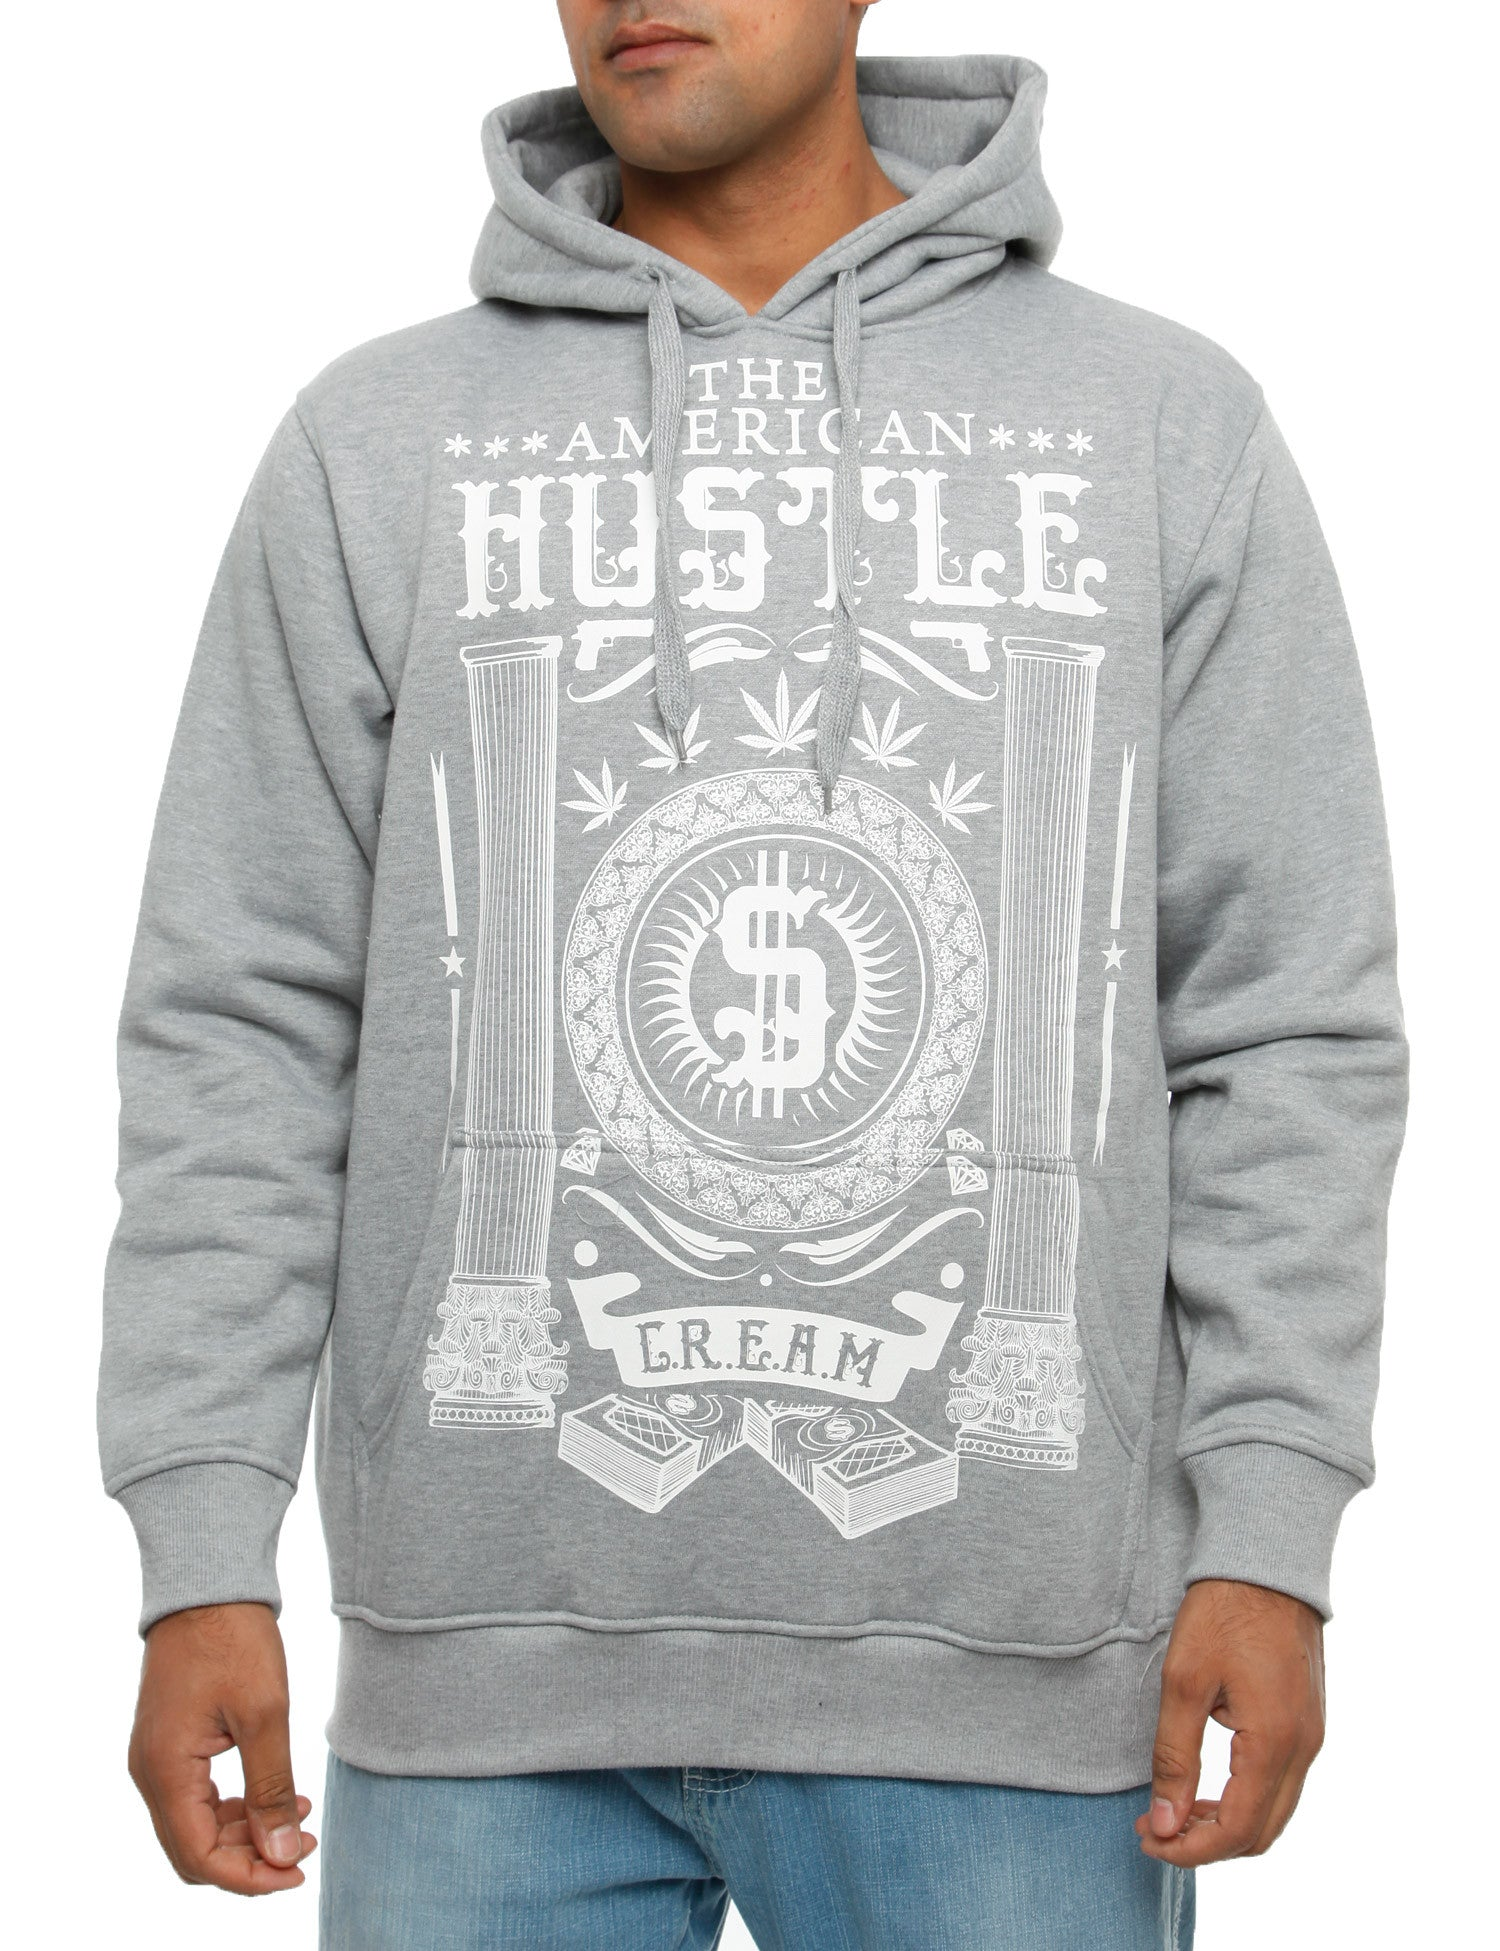 YLD HD-253B Hoody Grey